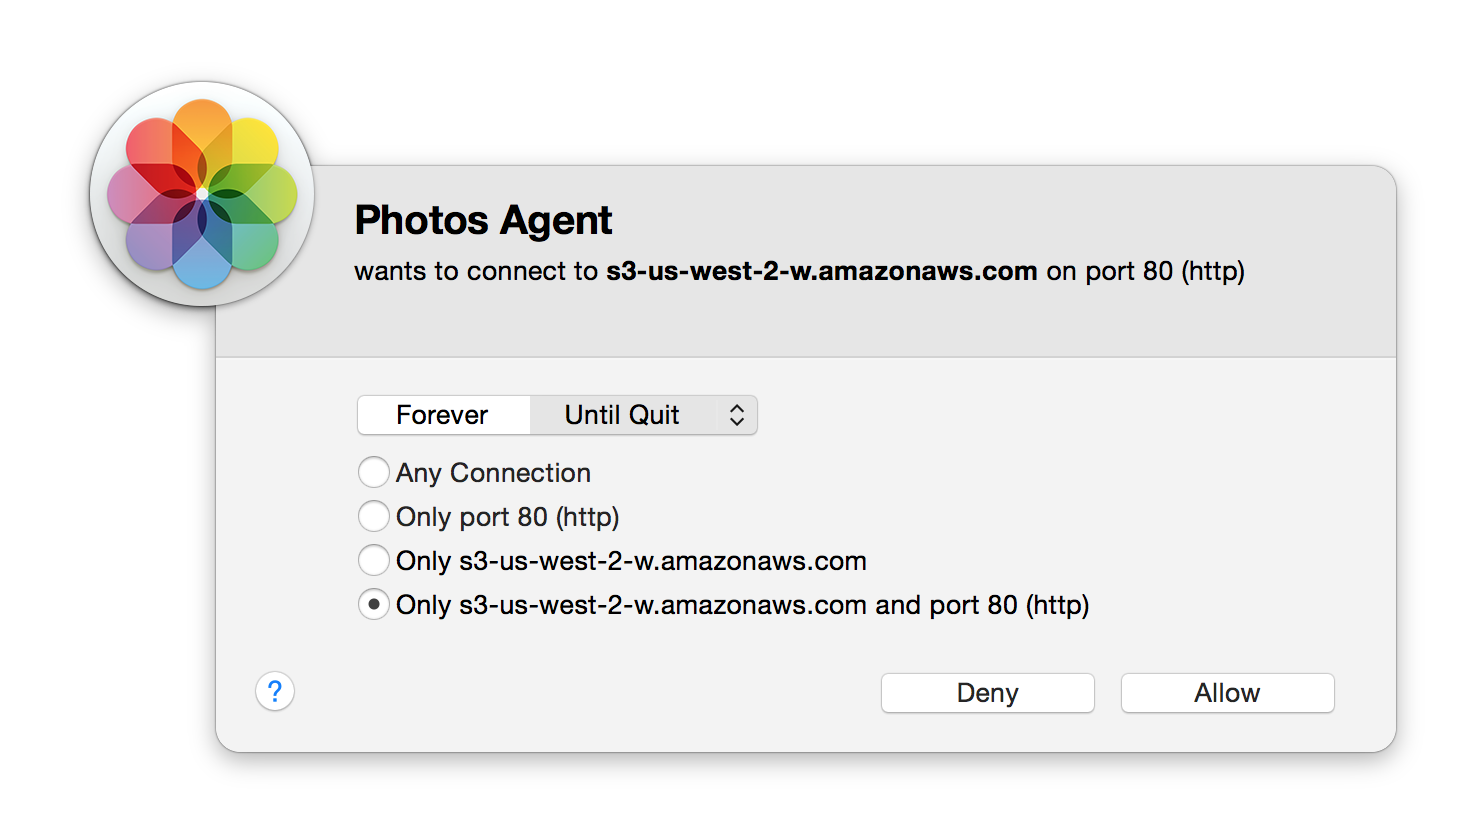 Apple Photos Agent using HTTP port 80